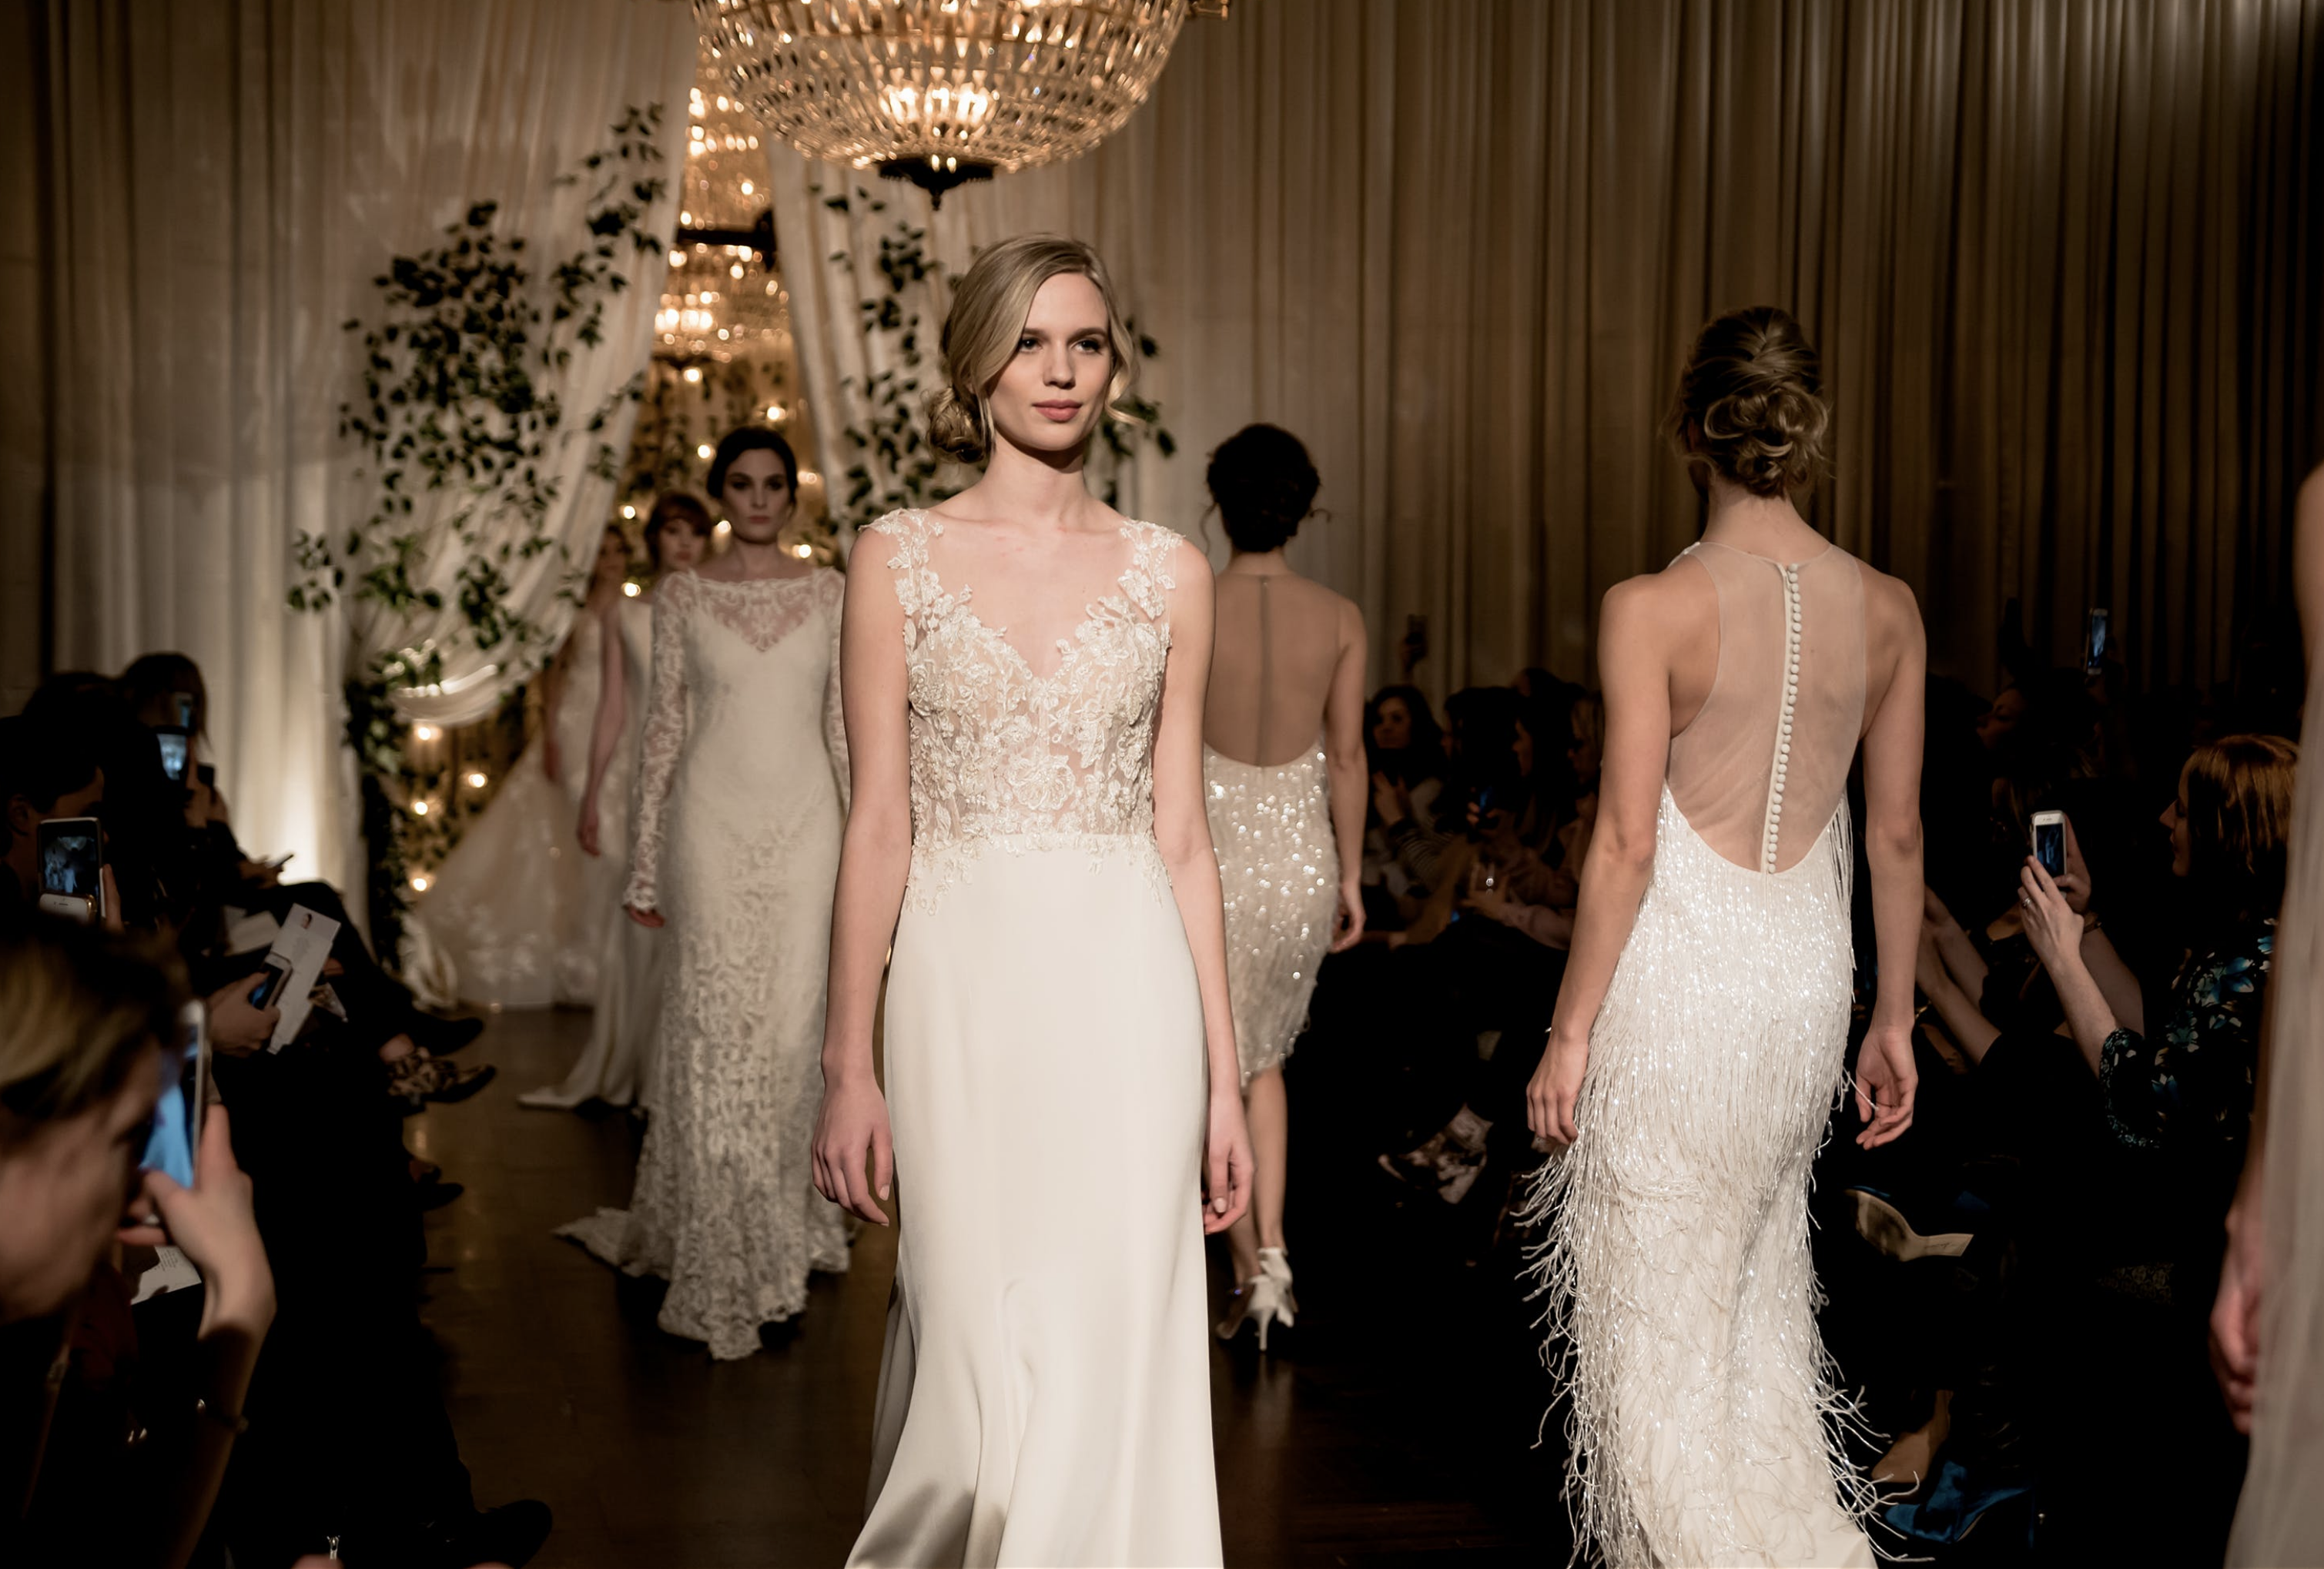 a422f226 Jenny Yoo Collection, the Keaton bridal gown features an illusion V neck  and back with beaded applique, adding sparkly dimension. Covered buttons  down the ...